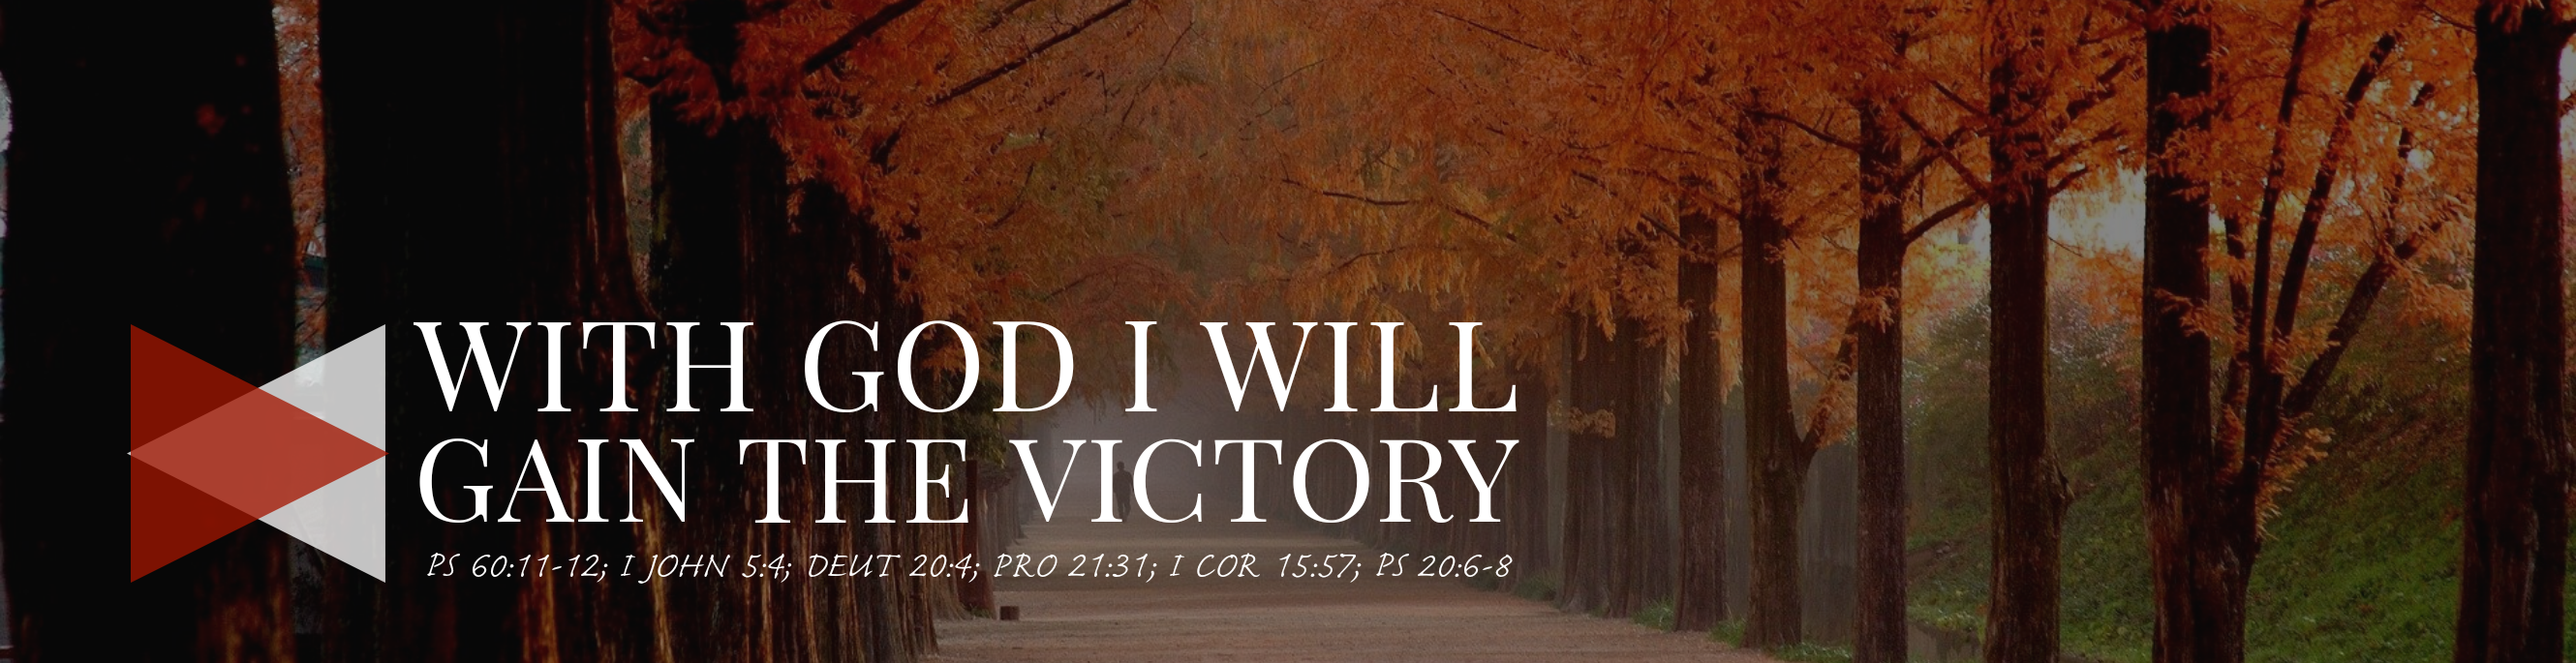 With God I Will Gain The Victory